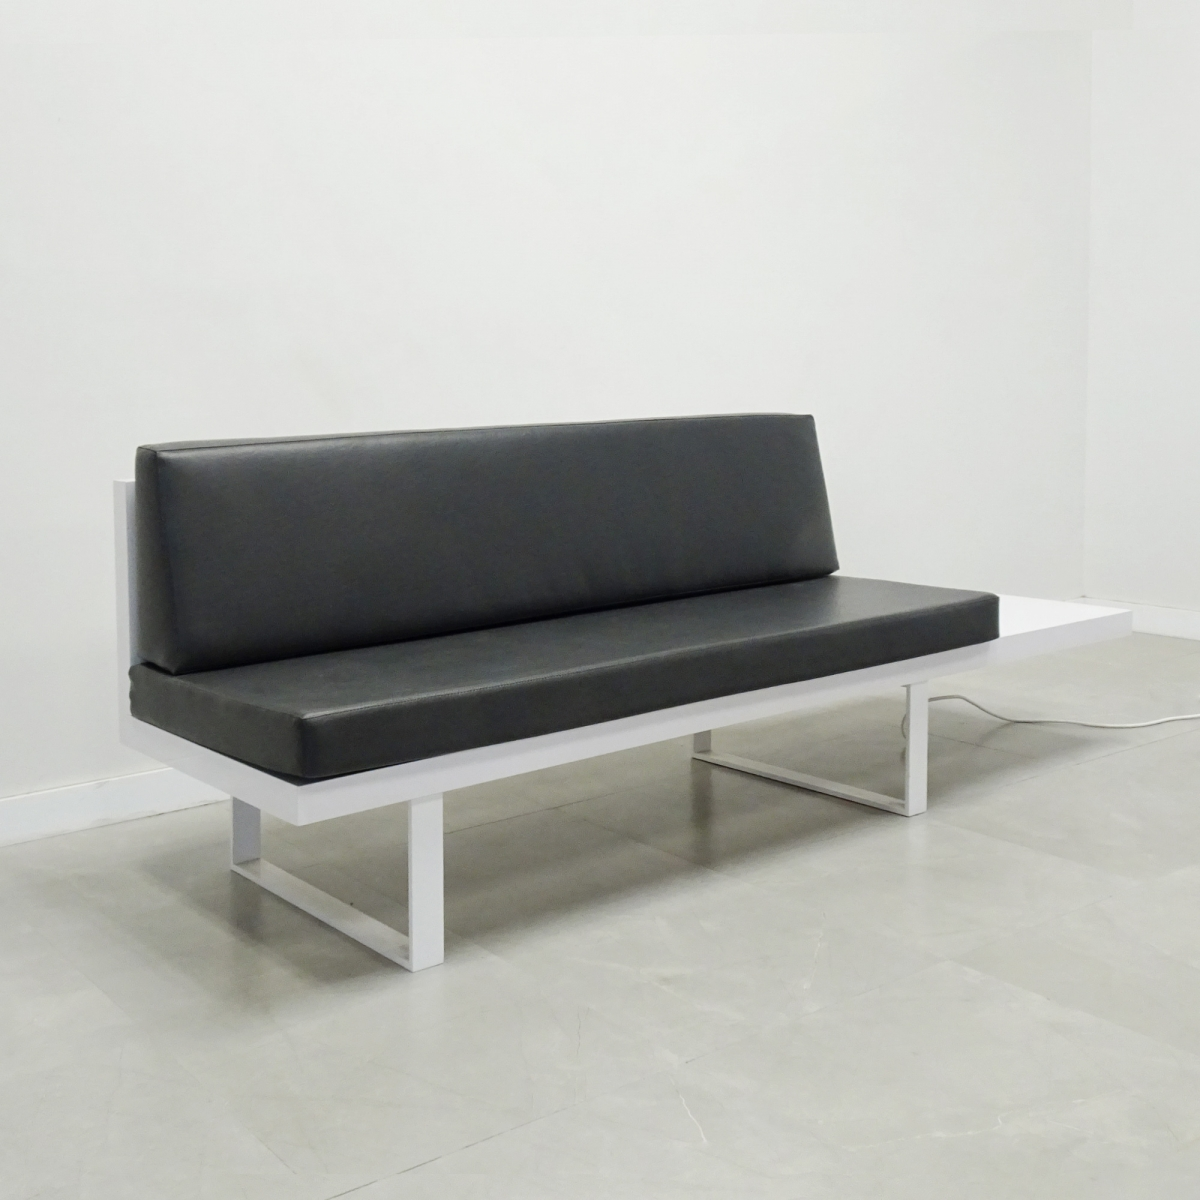 96 In Axis Straight Sofa - Stock #30